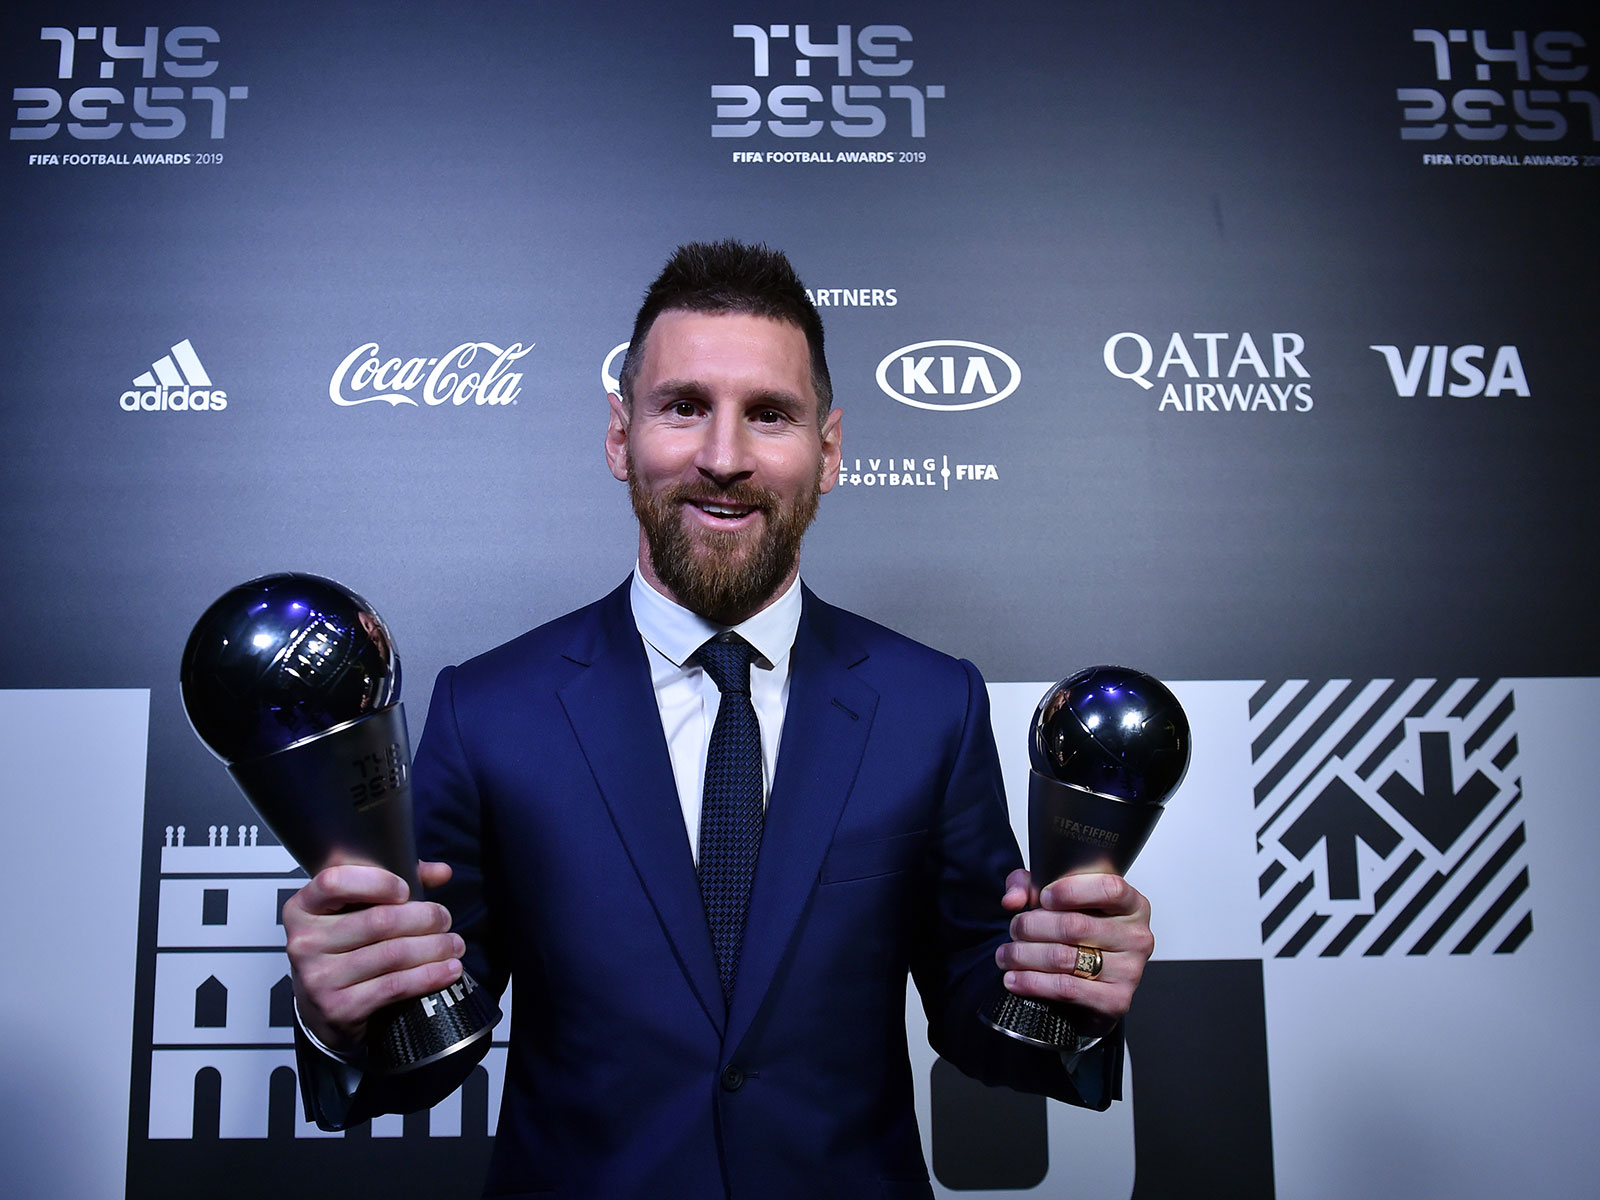 Lionel Messi won FIFA's player of the year award again